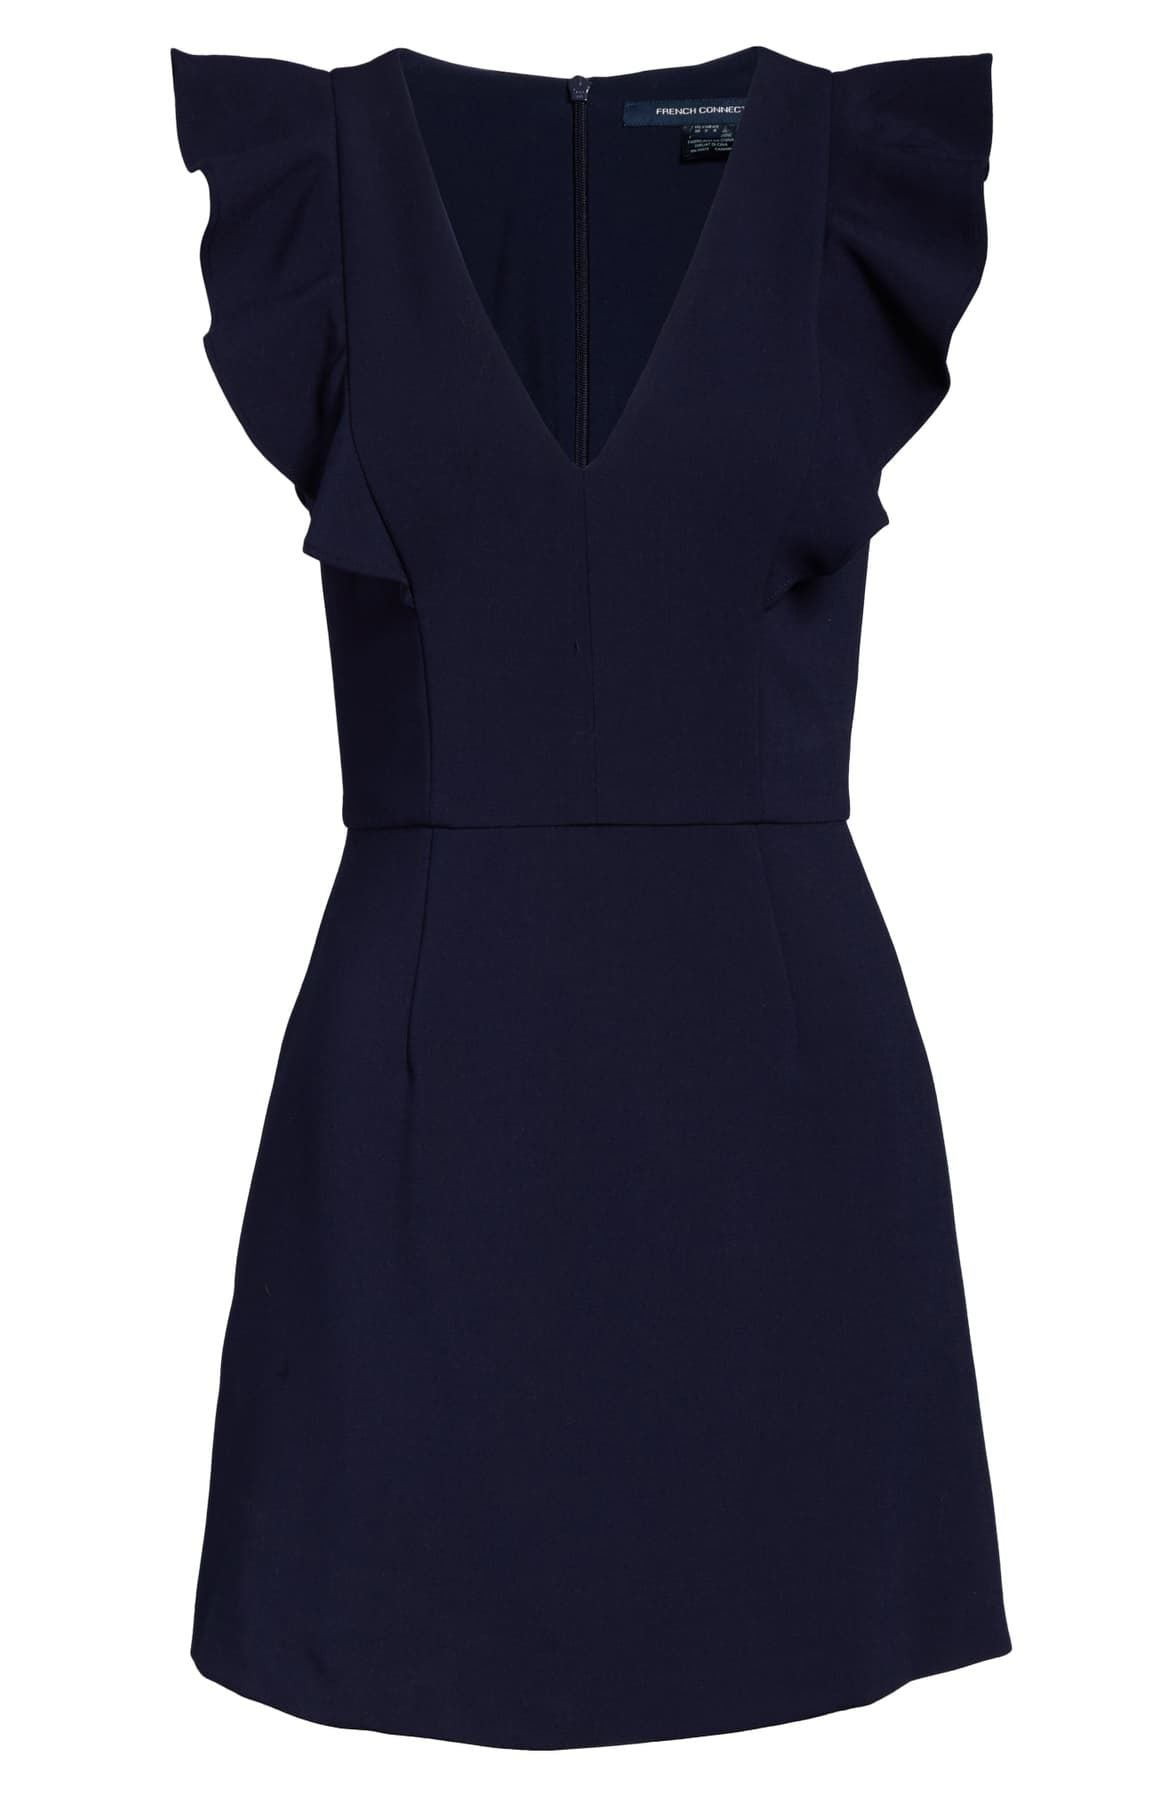 French Connection Cameron Dress - Duchess Blue